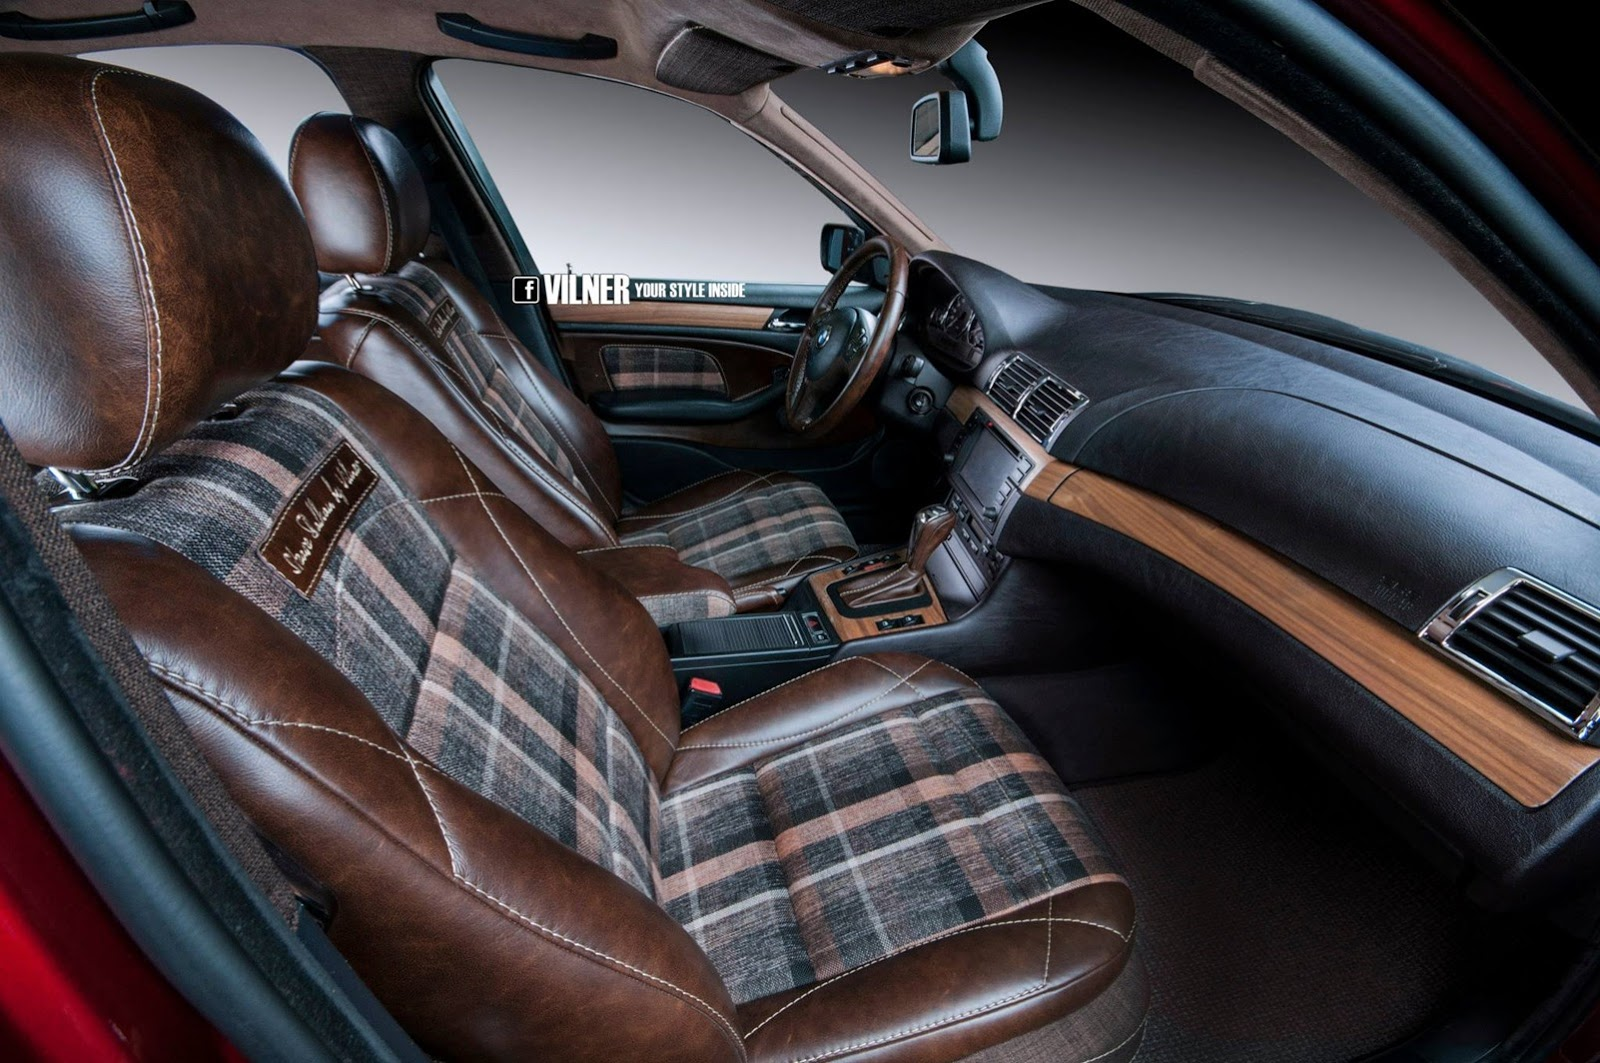 bmw e46 3 series gets hipster interior from vilner autoevolution. Black Bedroom Furniture Sets. Home Design Ideas